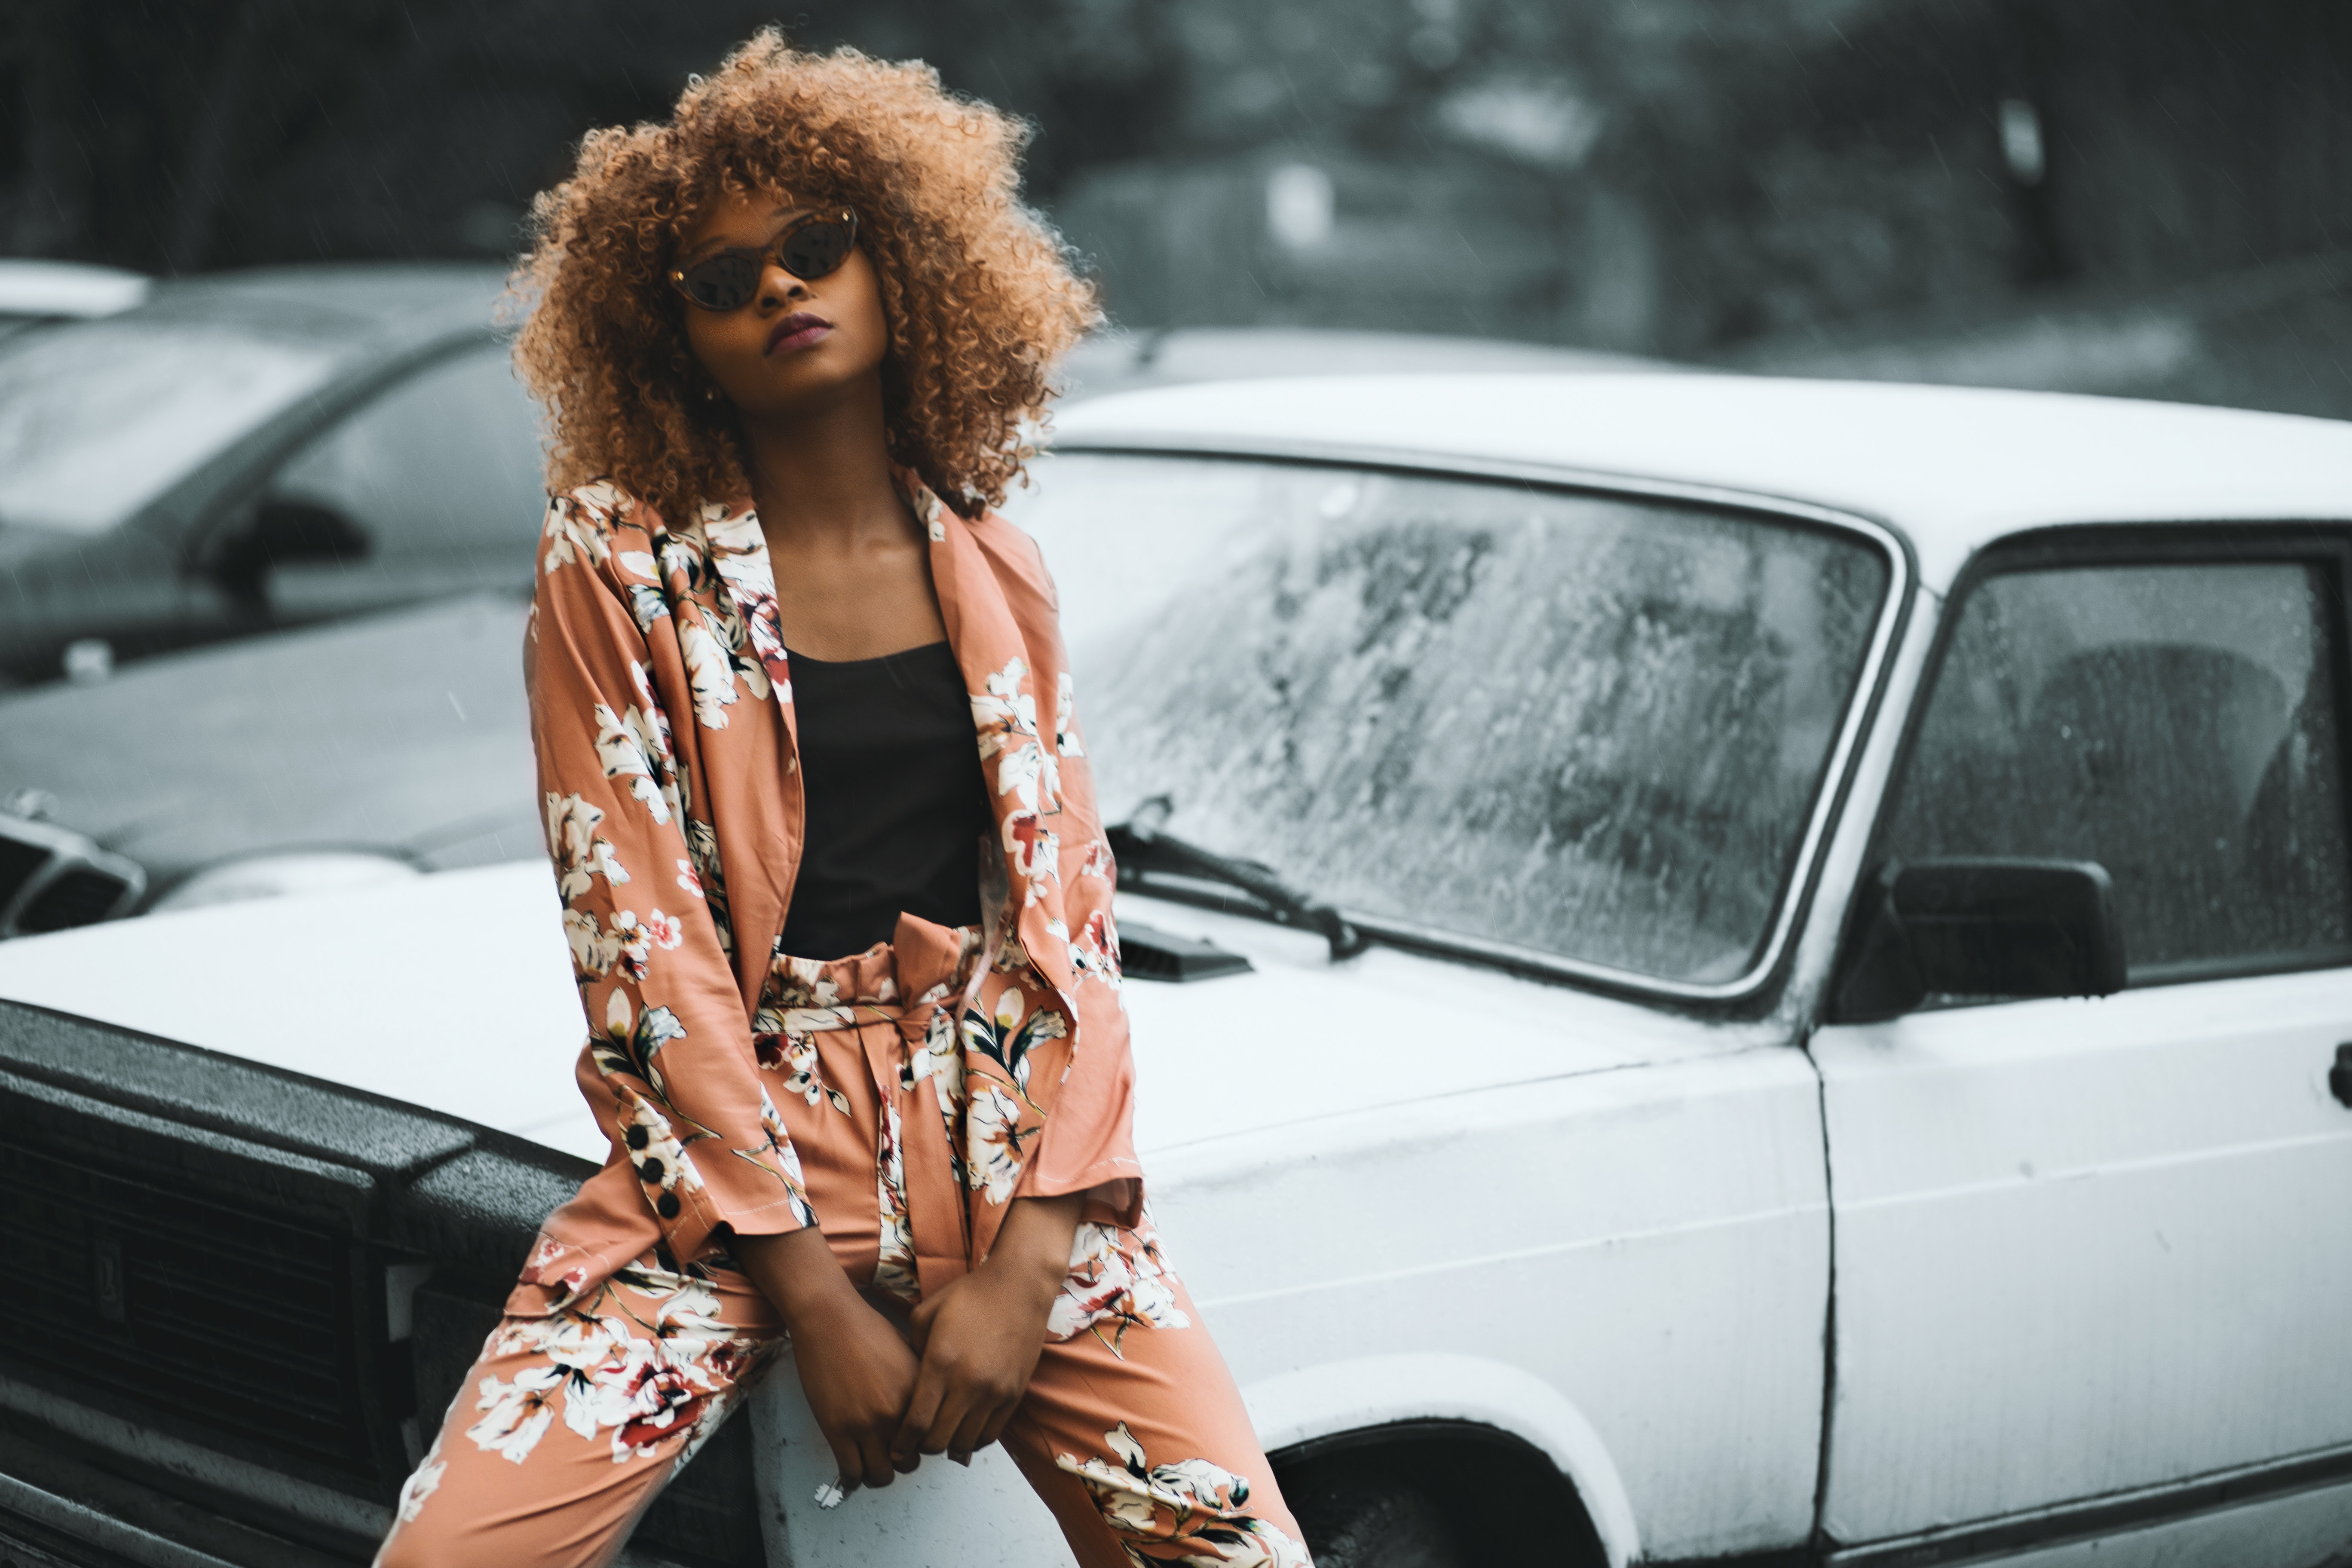 Woman Wearing Brown Floral Print Coat and Pants Sitting on Car, Old school, Young, Woman, Wear, HQ Photo